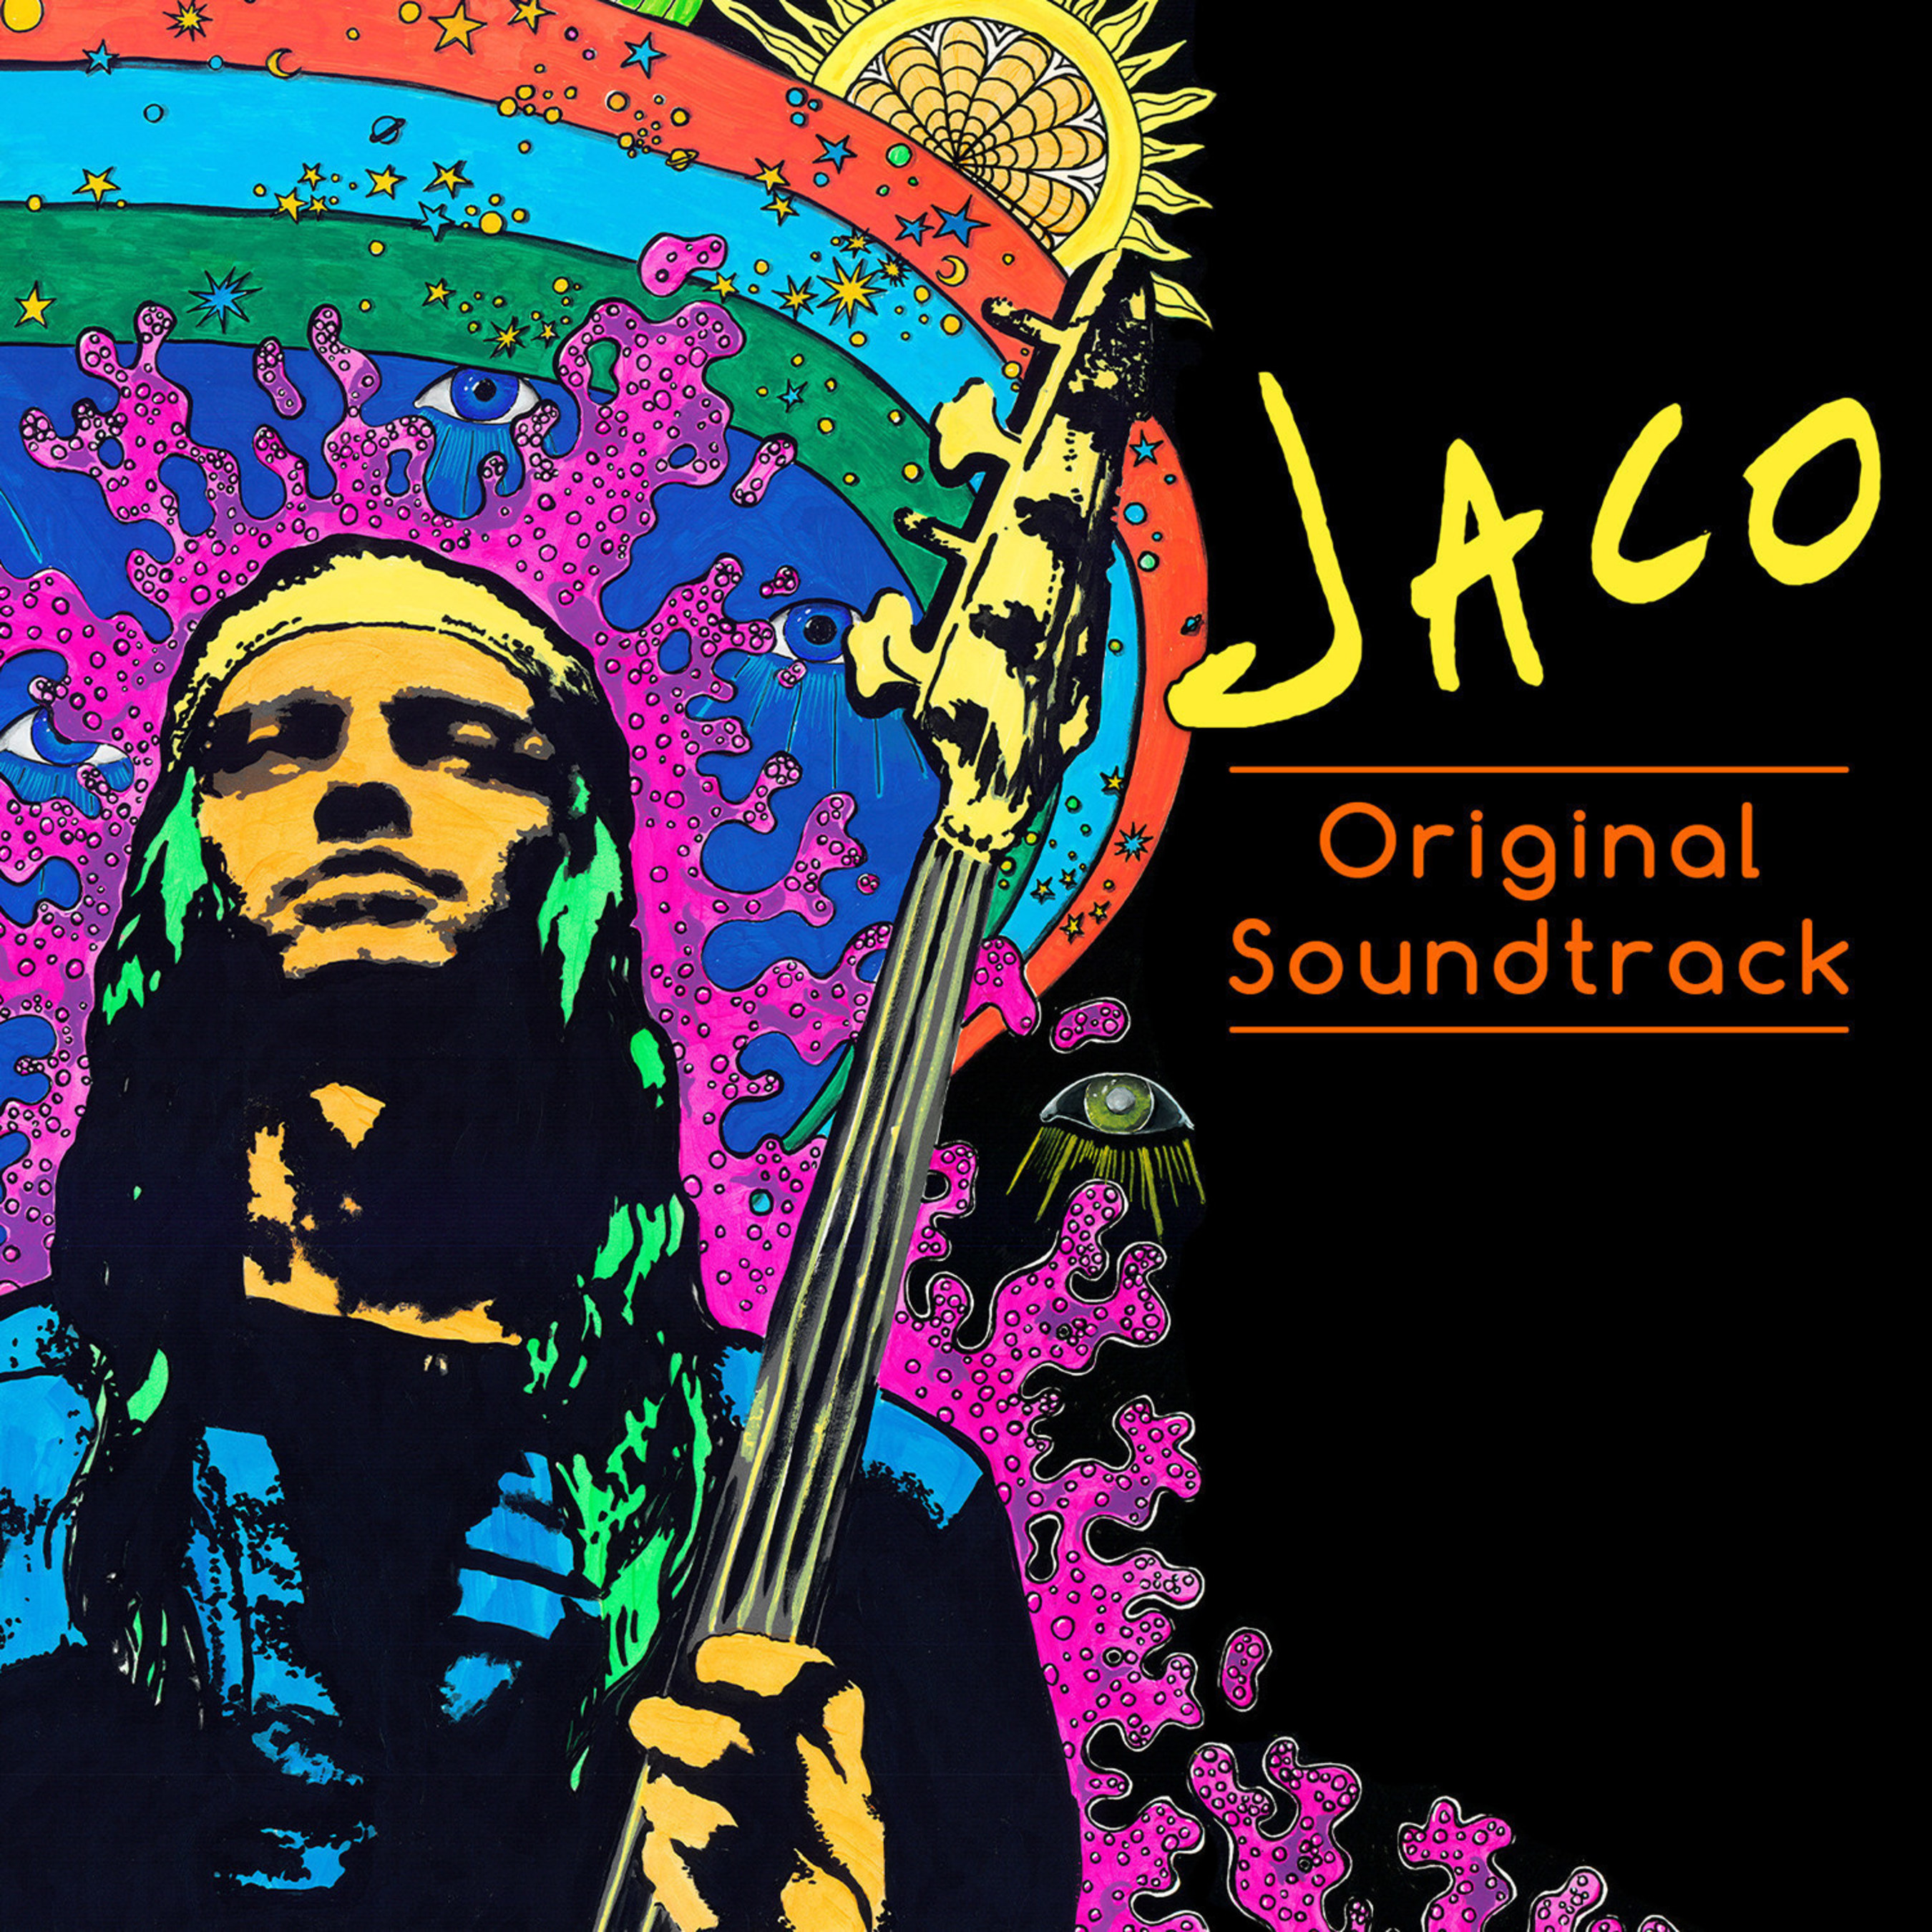 Legacy Recordings Set to Release JACO: Original Soundtrack on Friday, November 27, 2015 (Record Store Day Black Friday 2015)